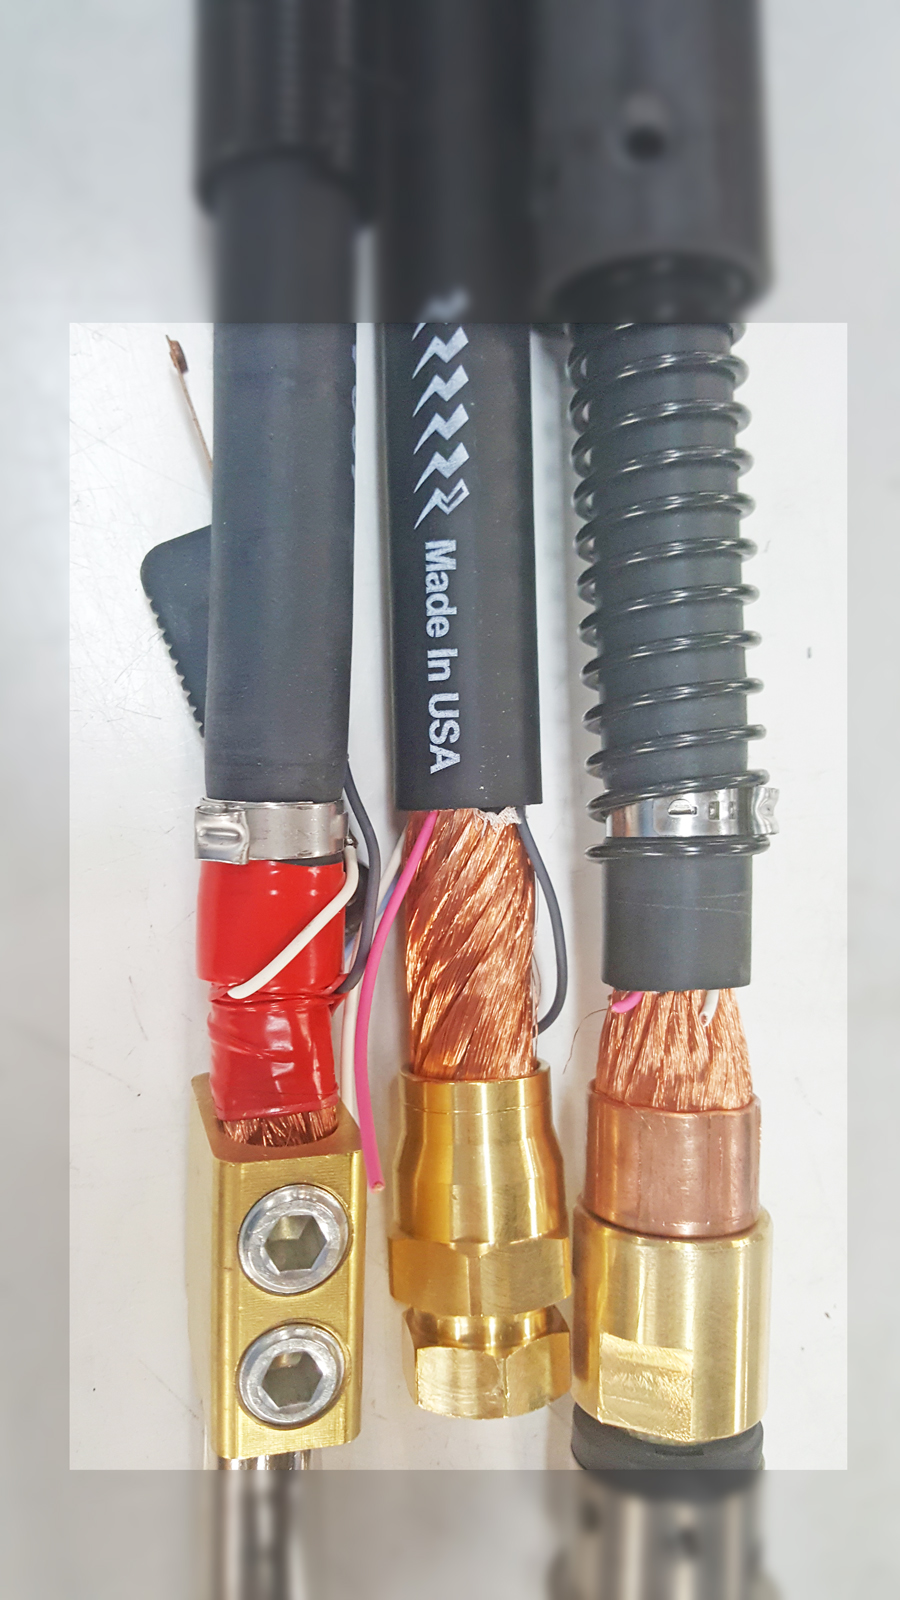 manufacturers use crimp connections